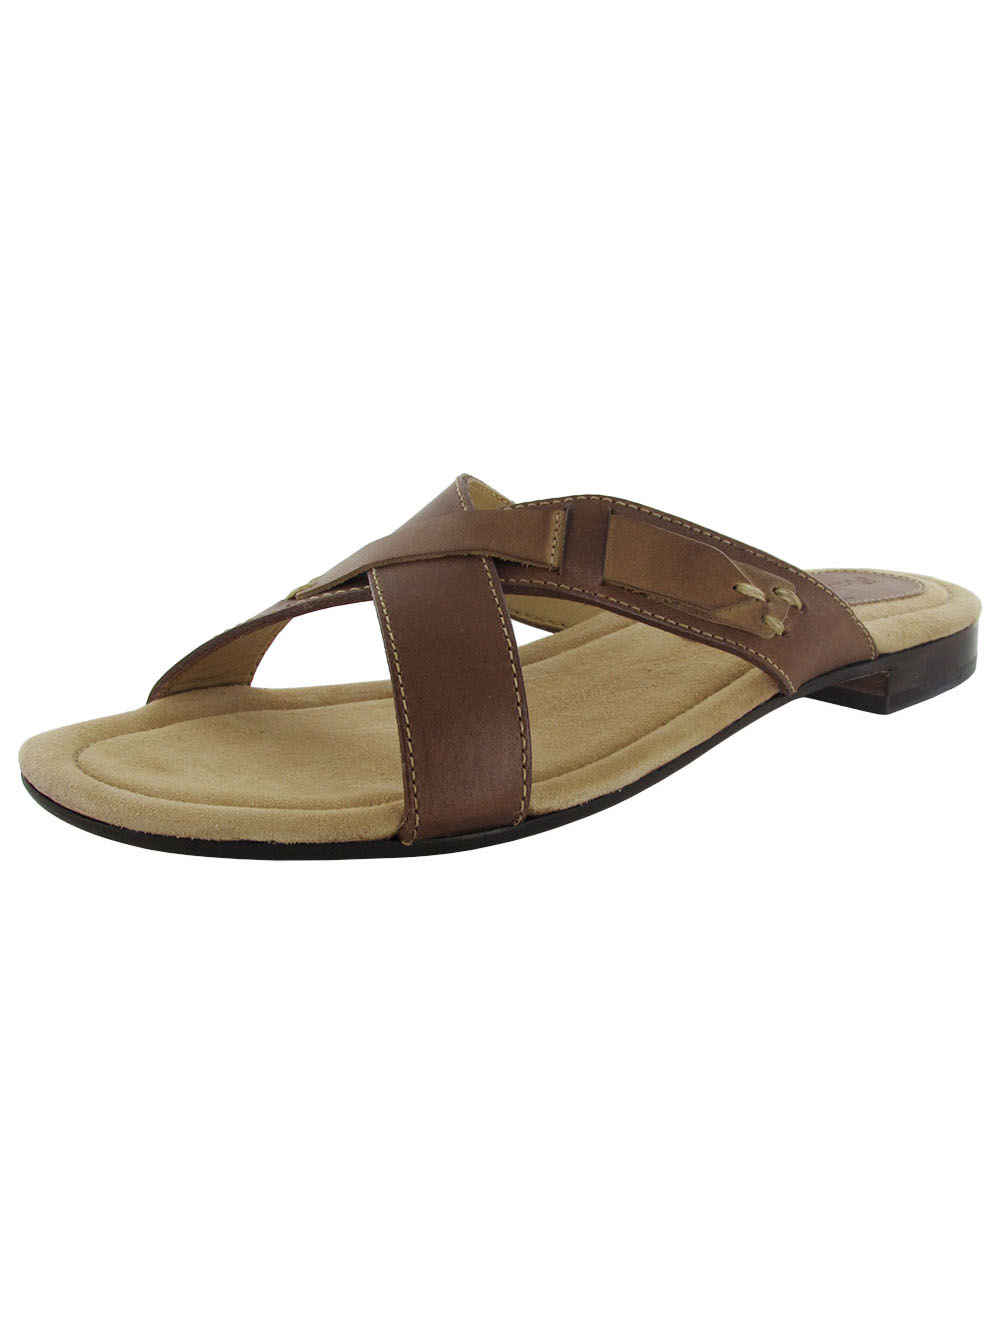 Tommy Bahama 'Crossed Acean' Slides Womens Sandals by Tommy Bahama R&R Holdings, Inc.